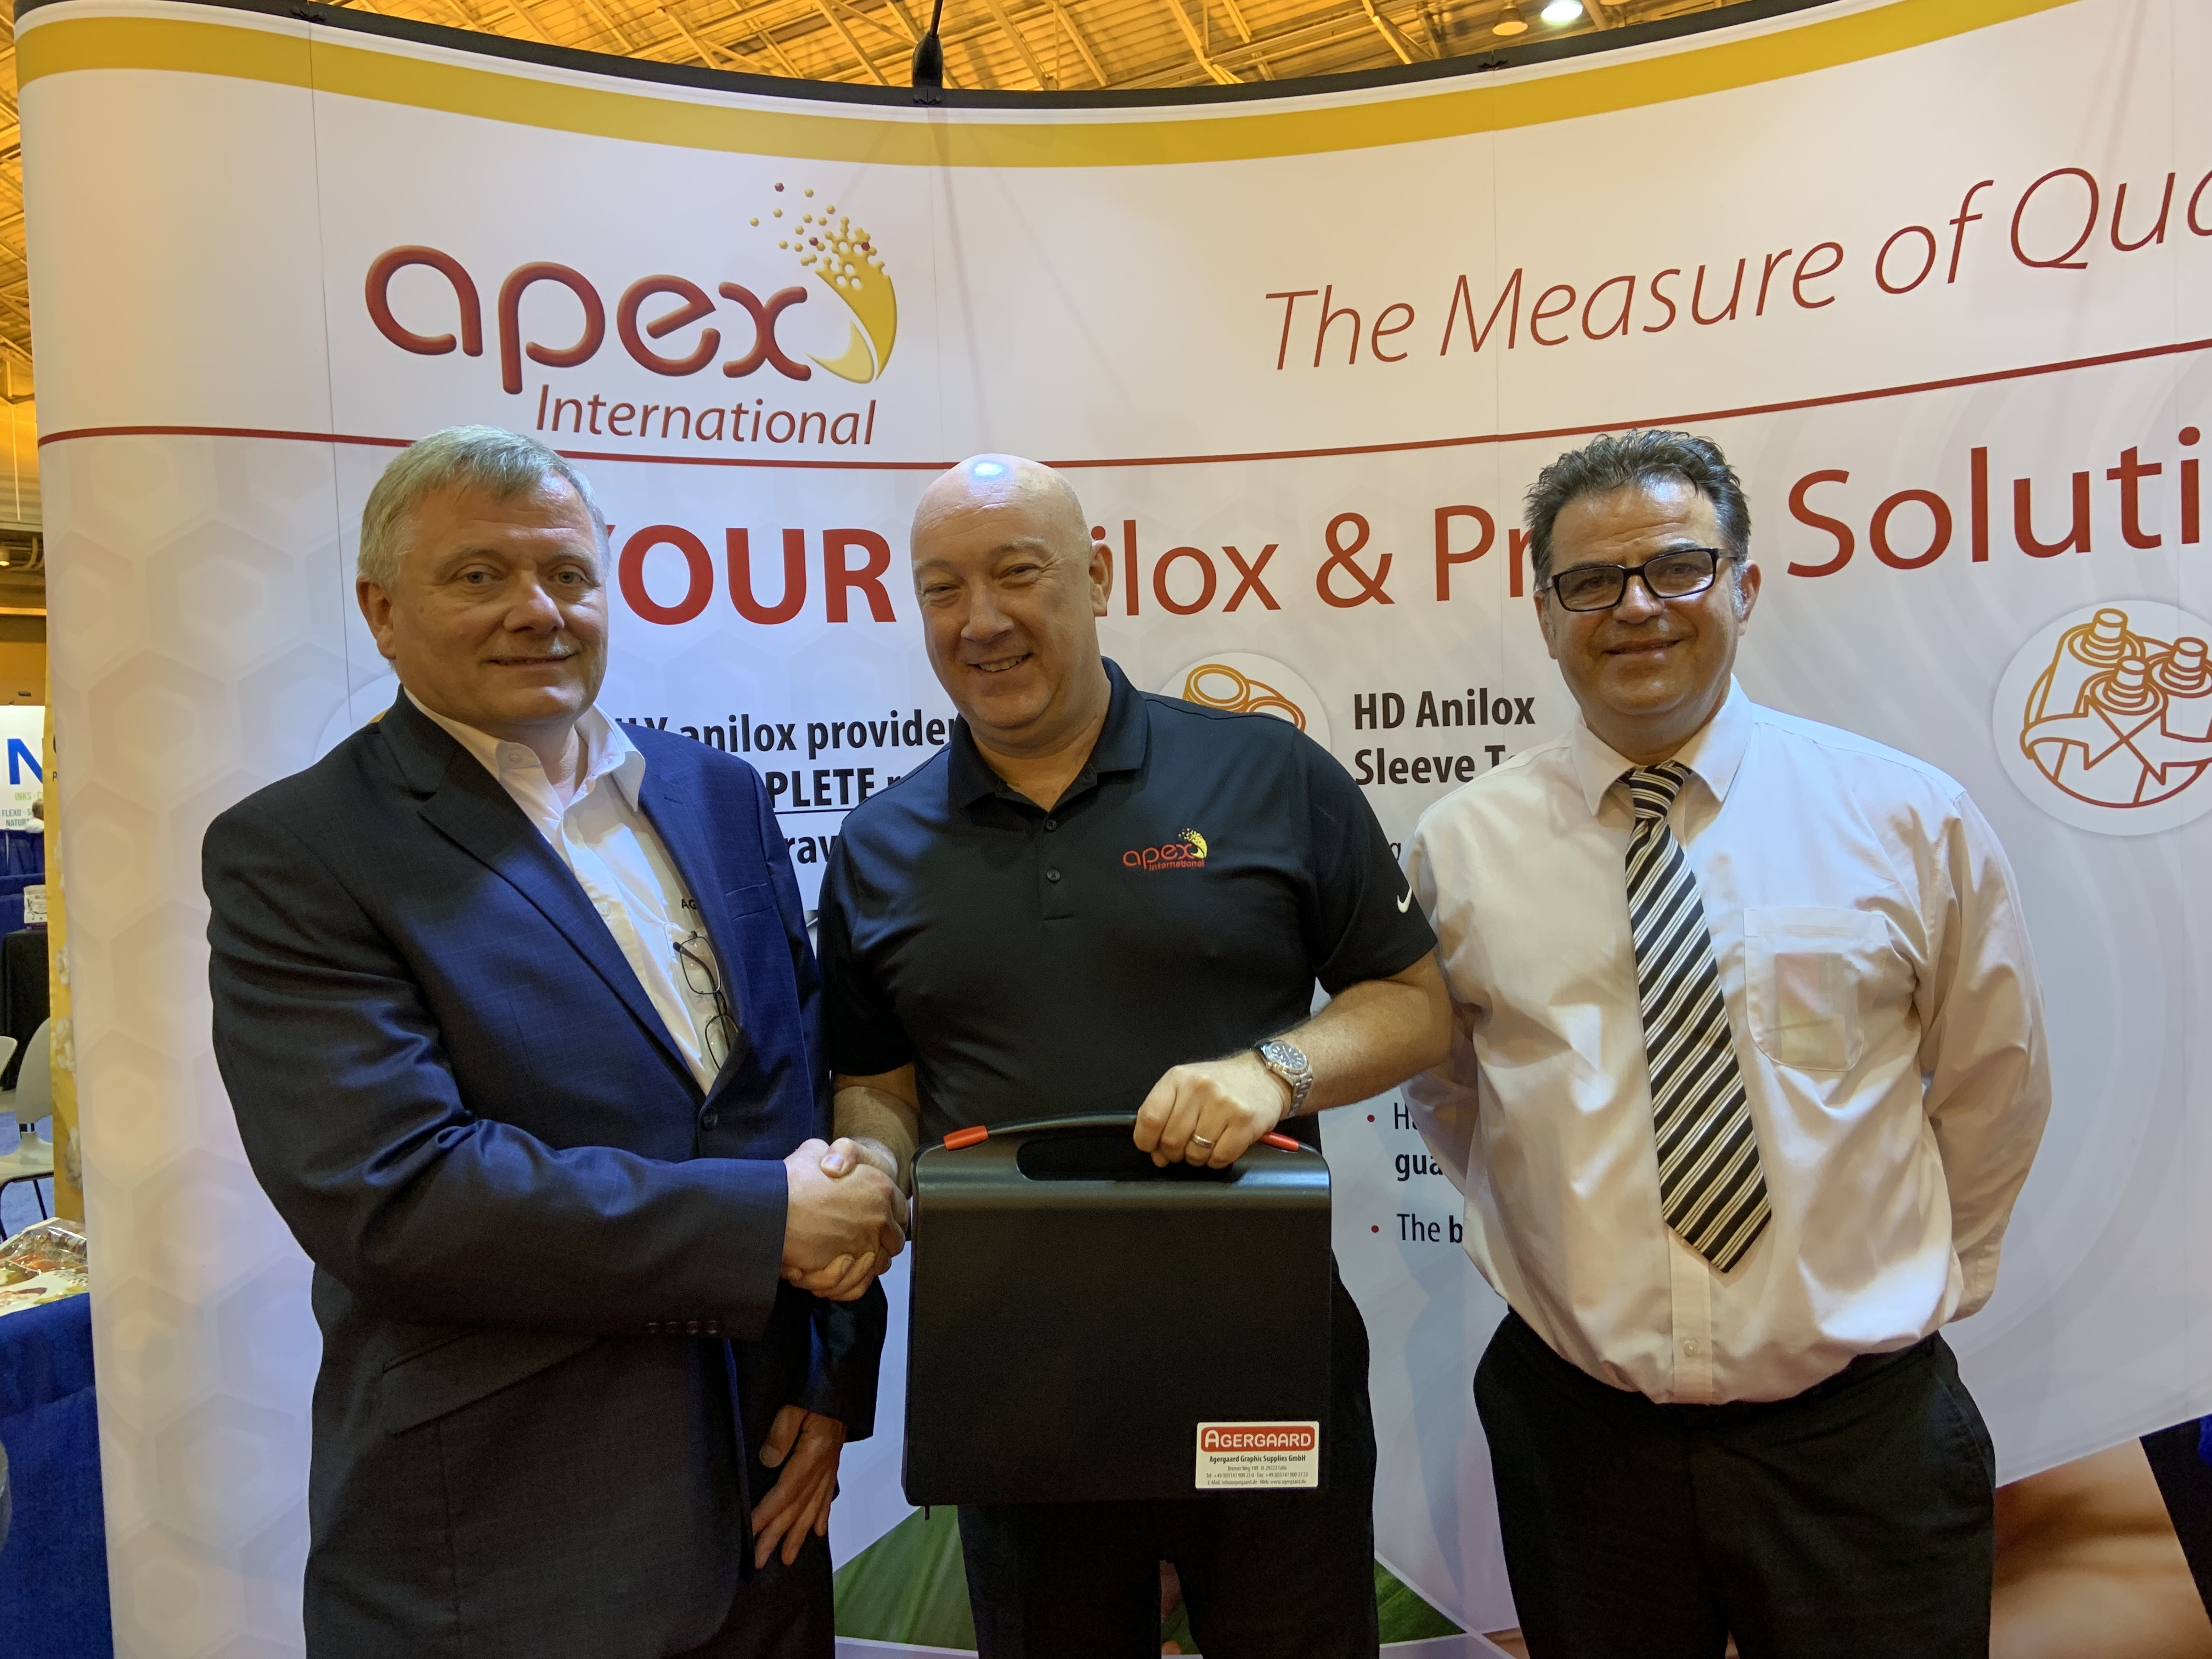 From L to R: Ole Agergaard (CEO of Agergaard Graphic Supplies), Dave McBeth (Vice President of Sales, Apex North America), Nick Harvey (Technical Director, Apex International)